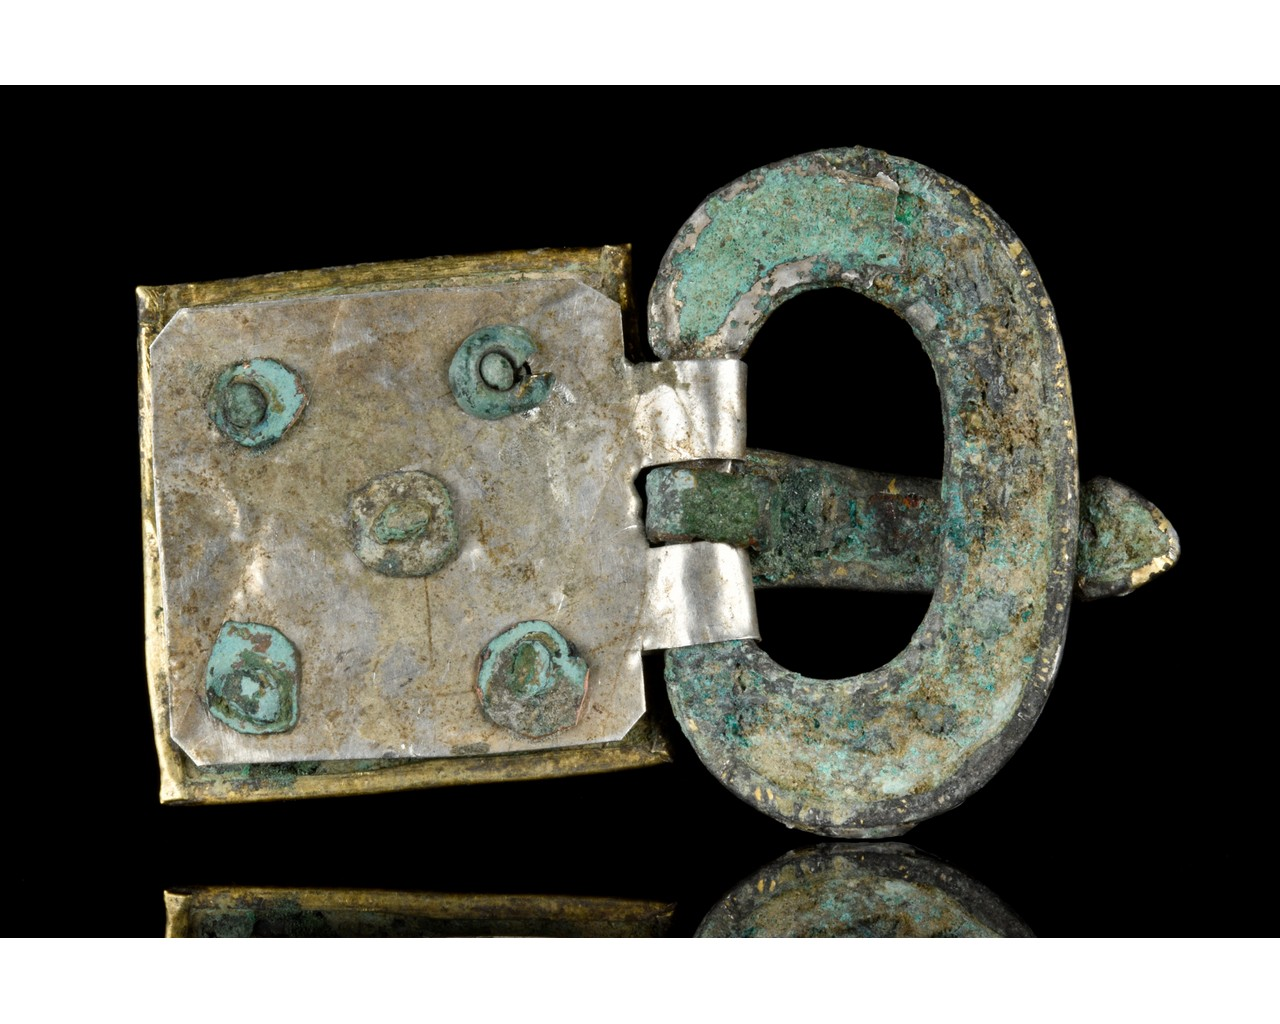 MEDIEVAL MEROVINGIAN SILVER BUCKLE WITH GEMS - Image 3 of 6